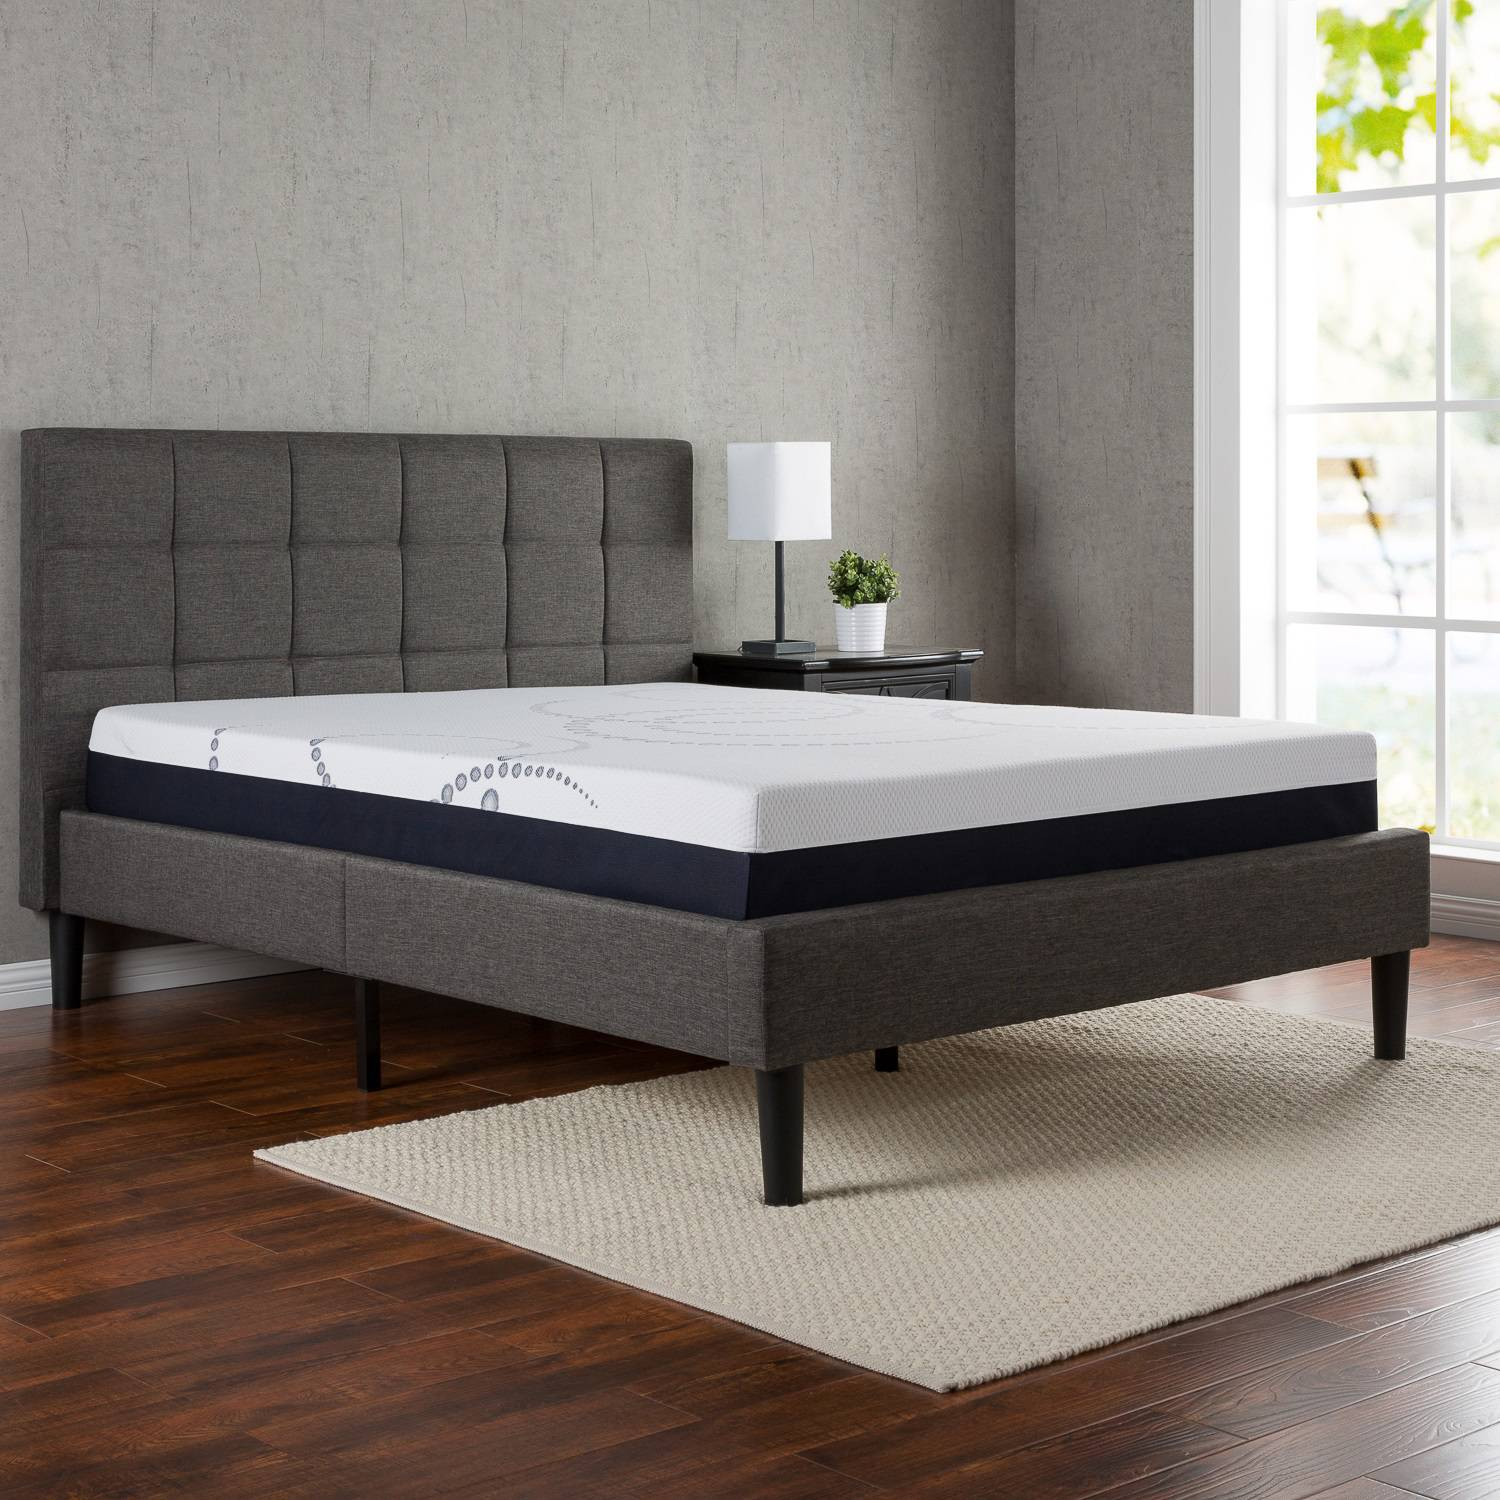 zinus upholstered square stitched platform bed with headboard and wooden slats multiple sizes walmartcom